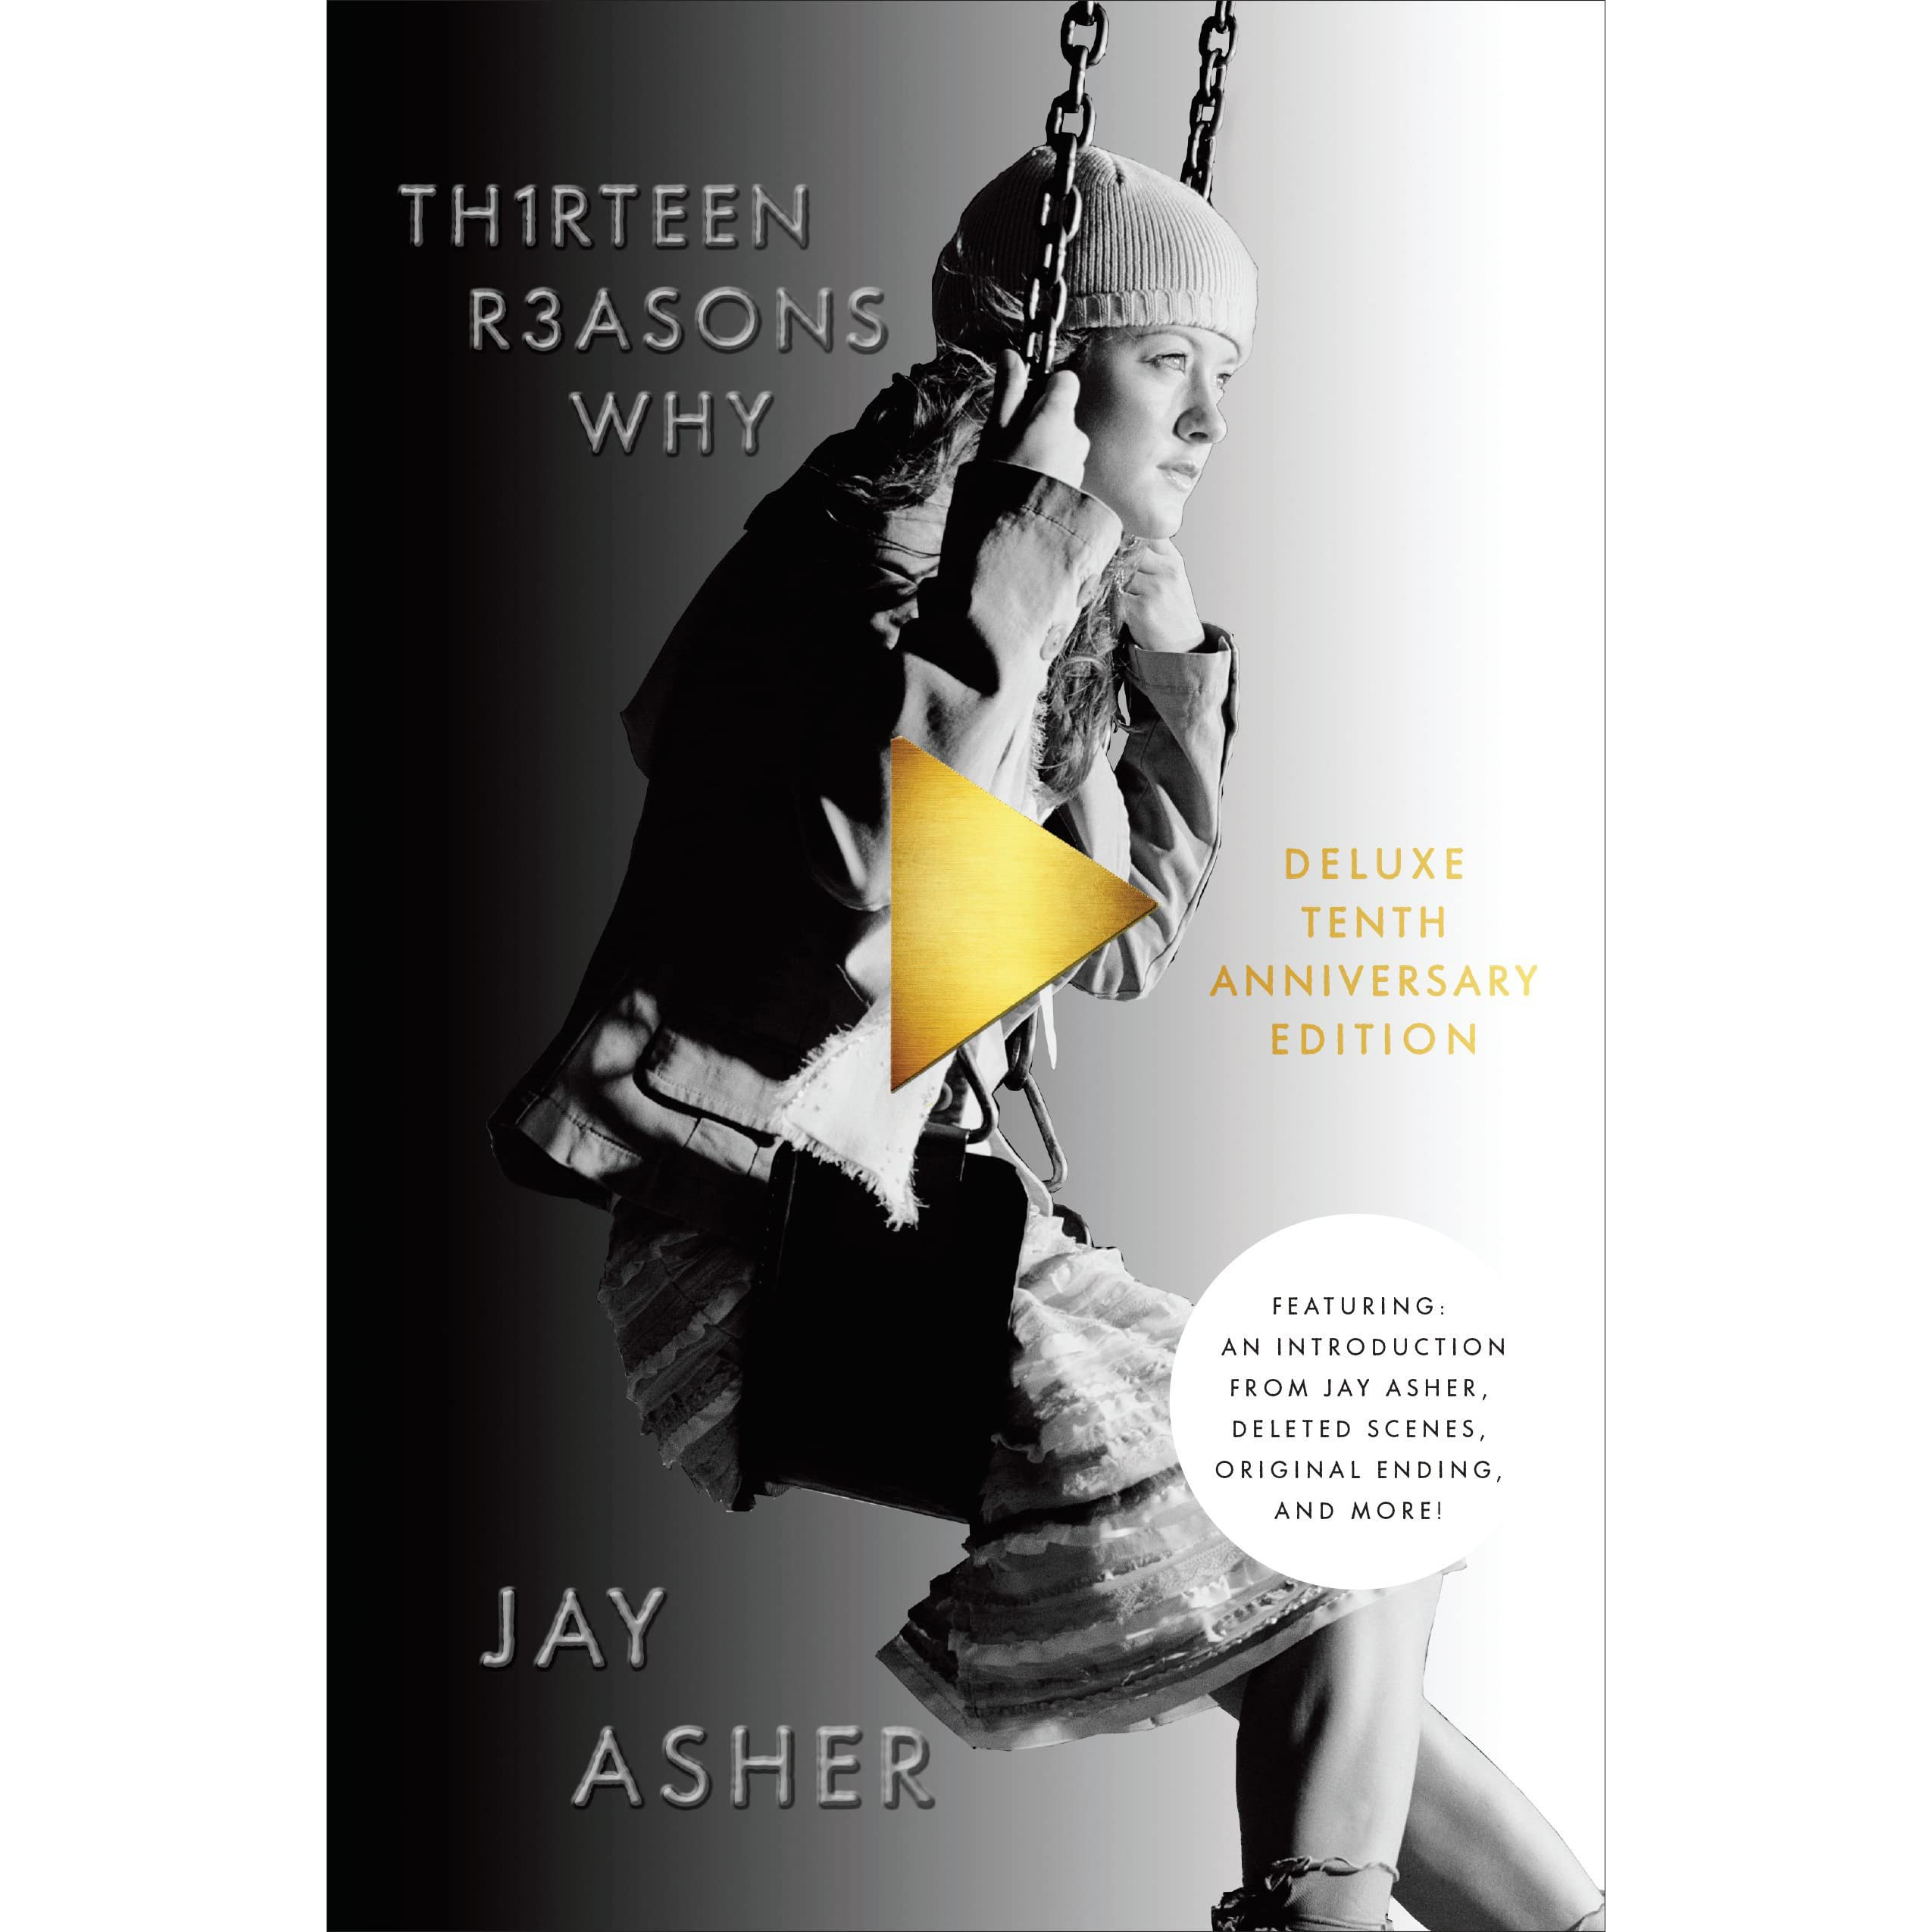 thirteen reasons whyjay asher